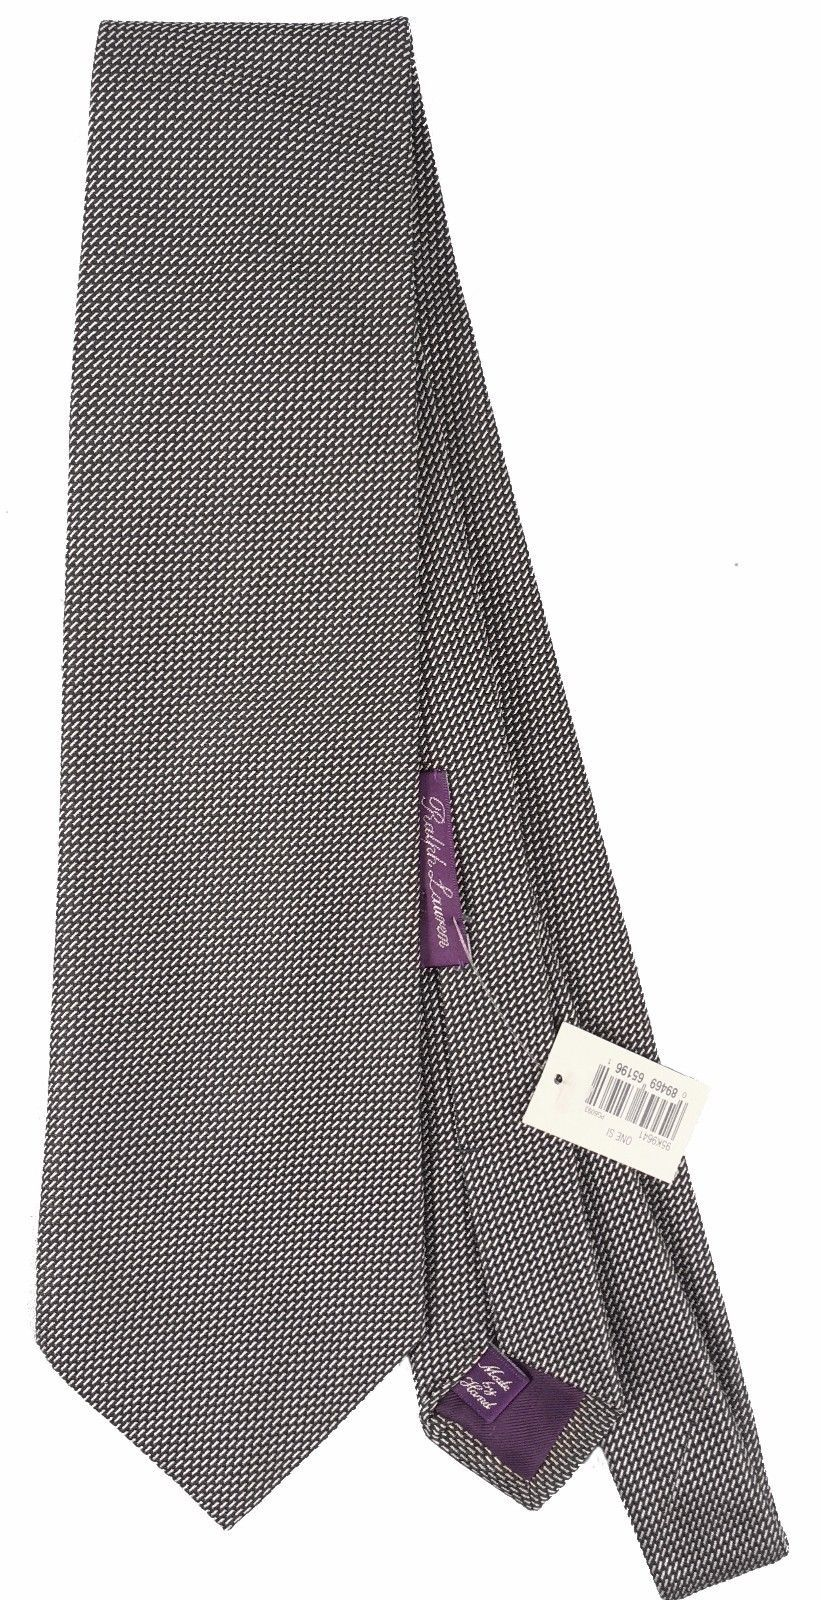 NEW! Ralph Lauren Purple Label Silk Tie!  *Made in Italy*  *Black and Silver*